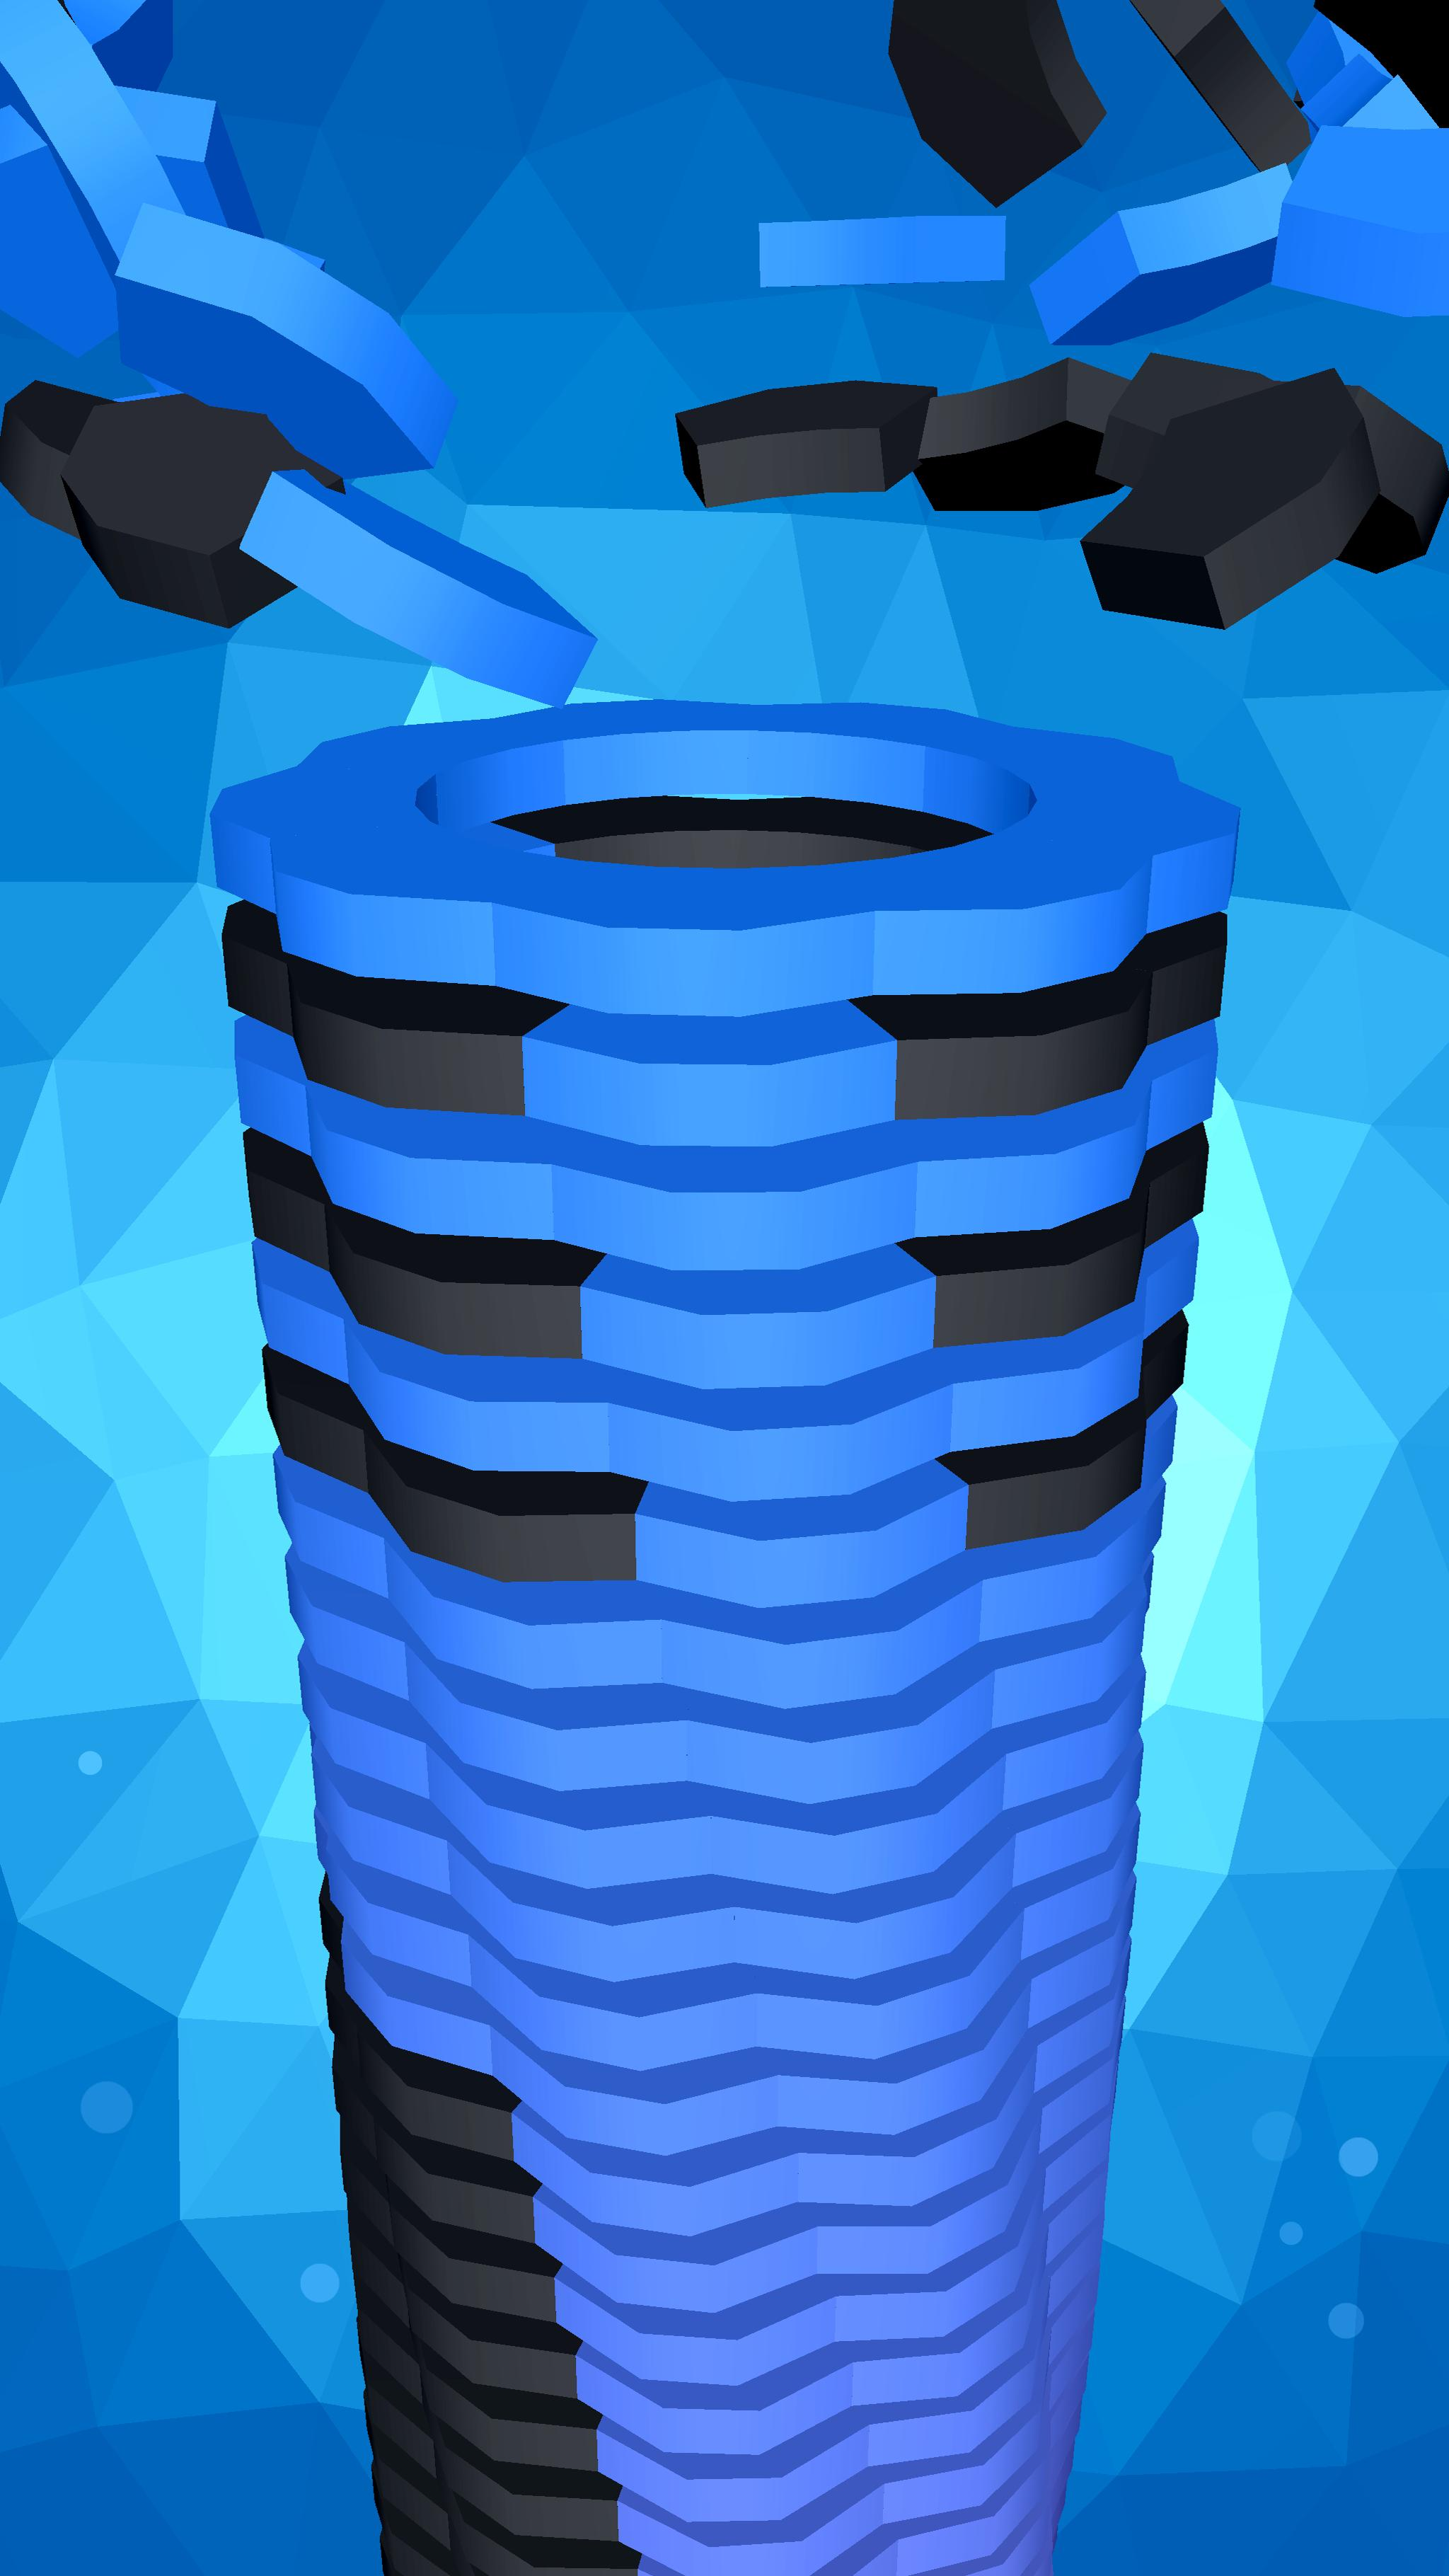 Drop Stack Ball screenshot 1